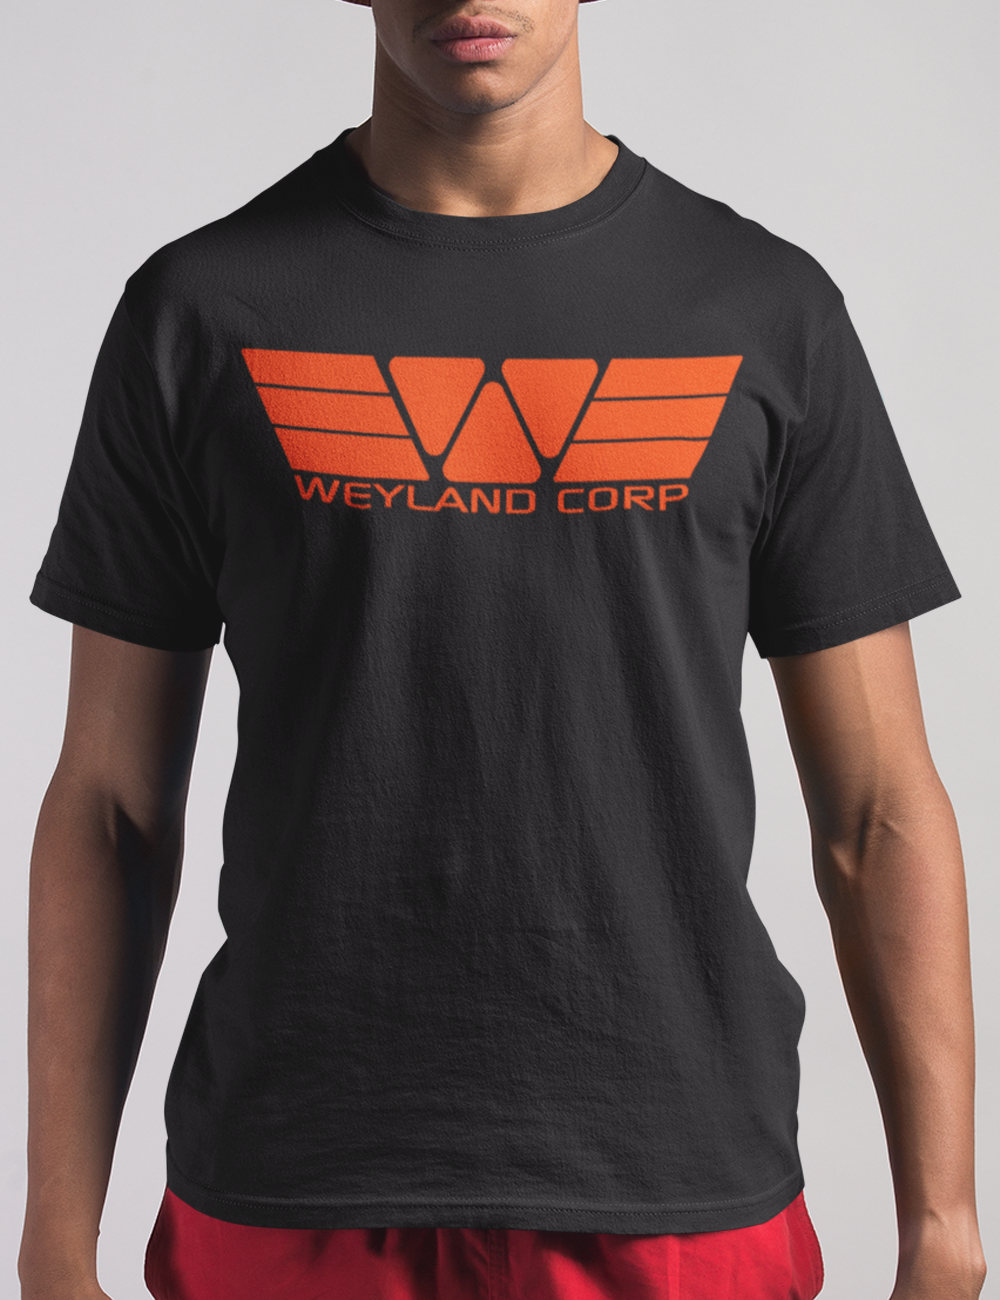 Weyland Corporation T-Shirt - OniTakai